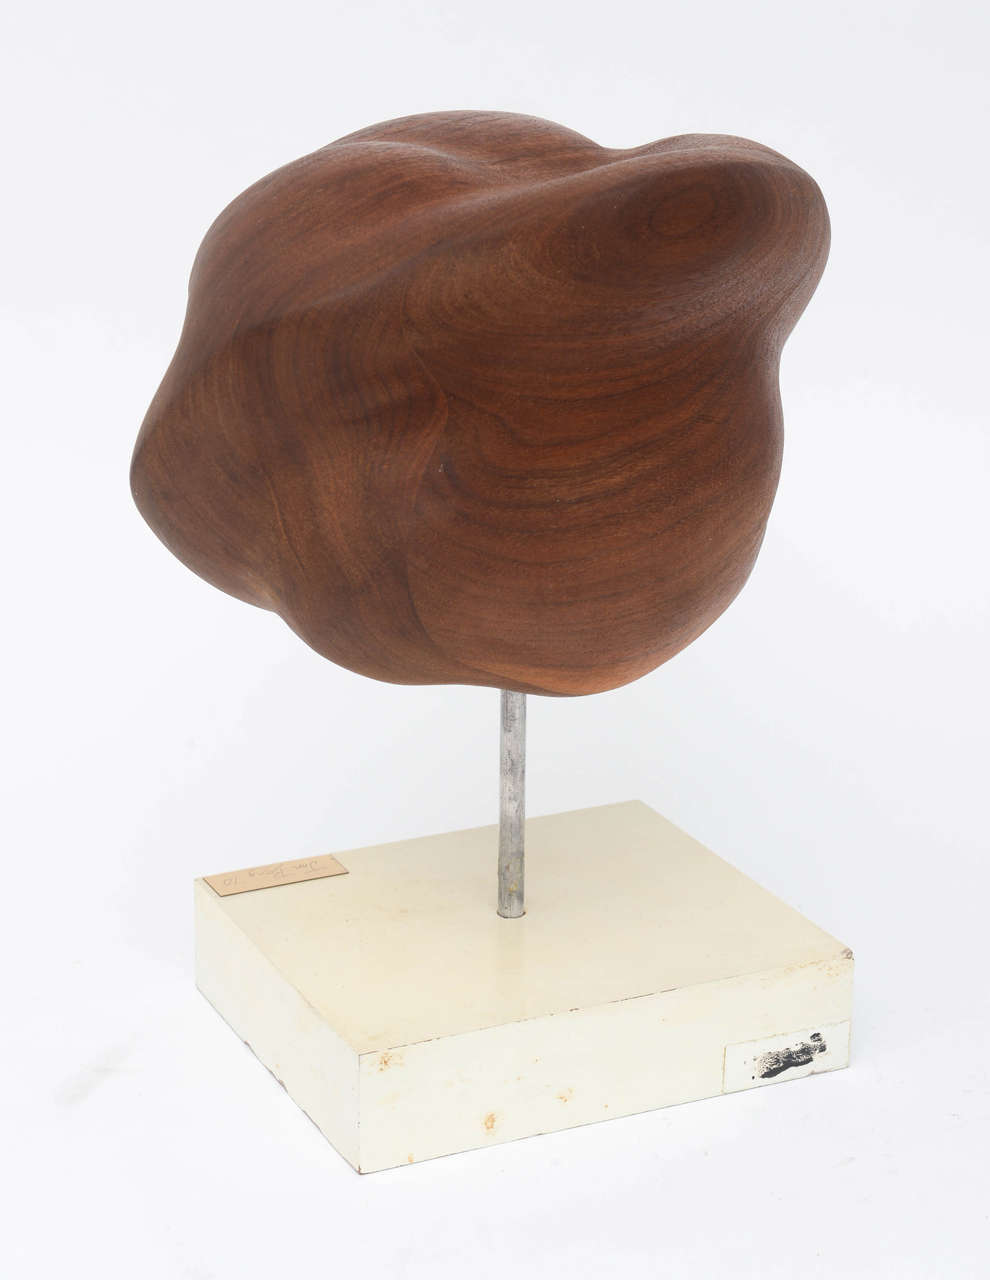 Mid century modern walnut sculpture by artist jon bery for for Modern decorative objects